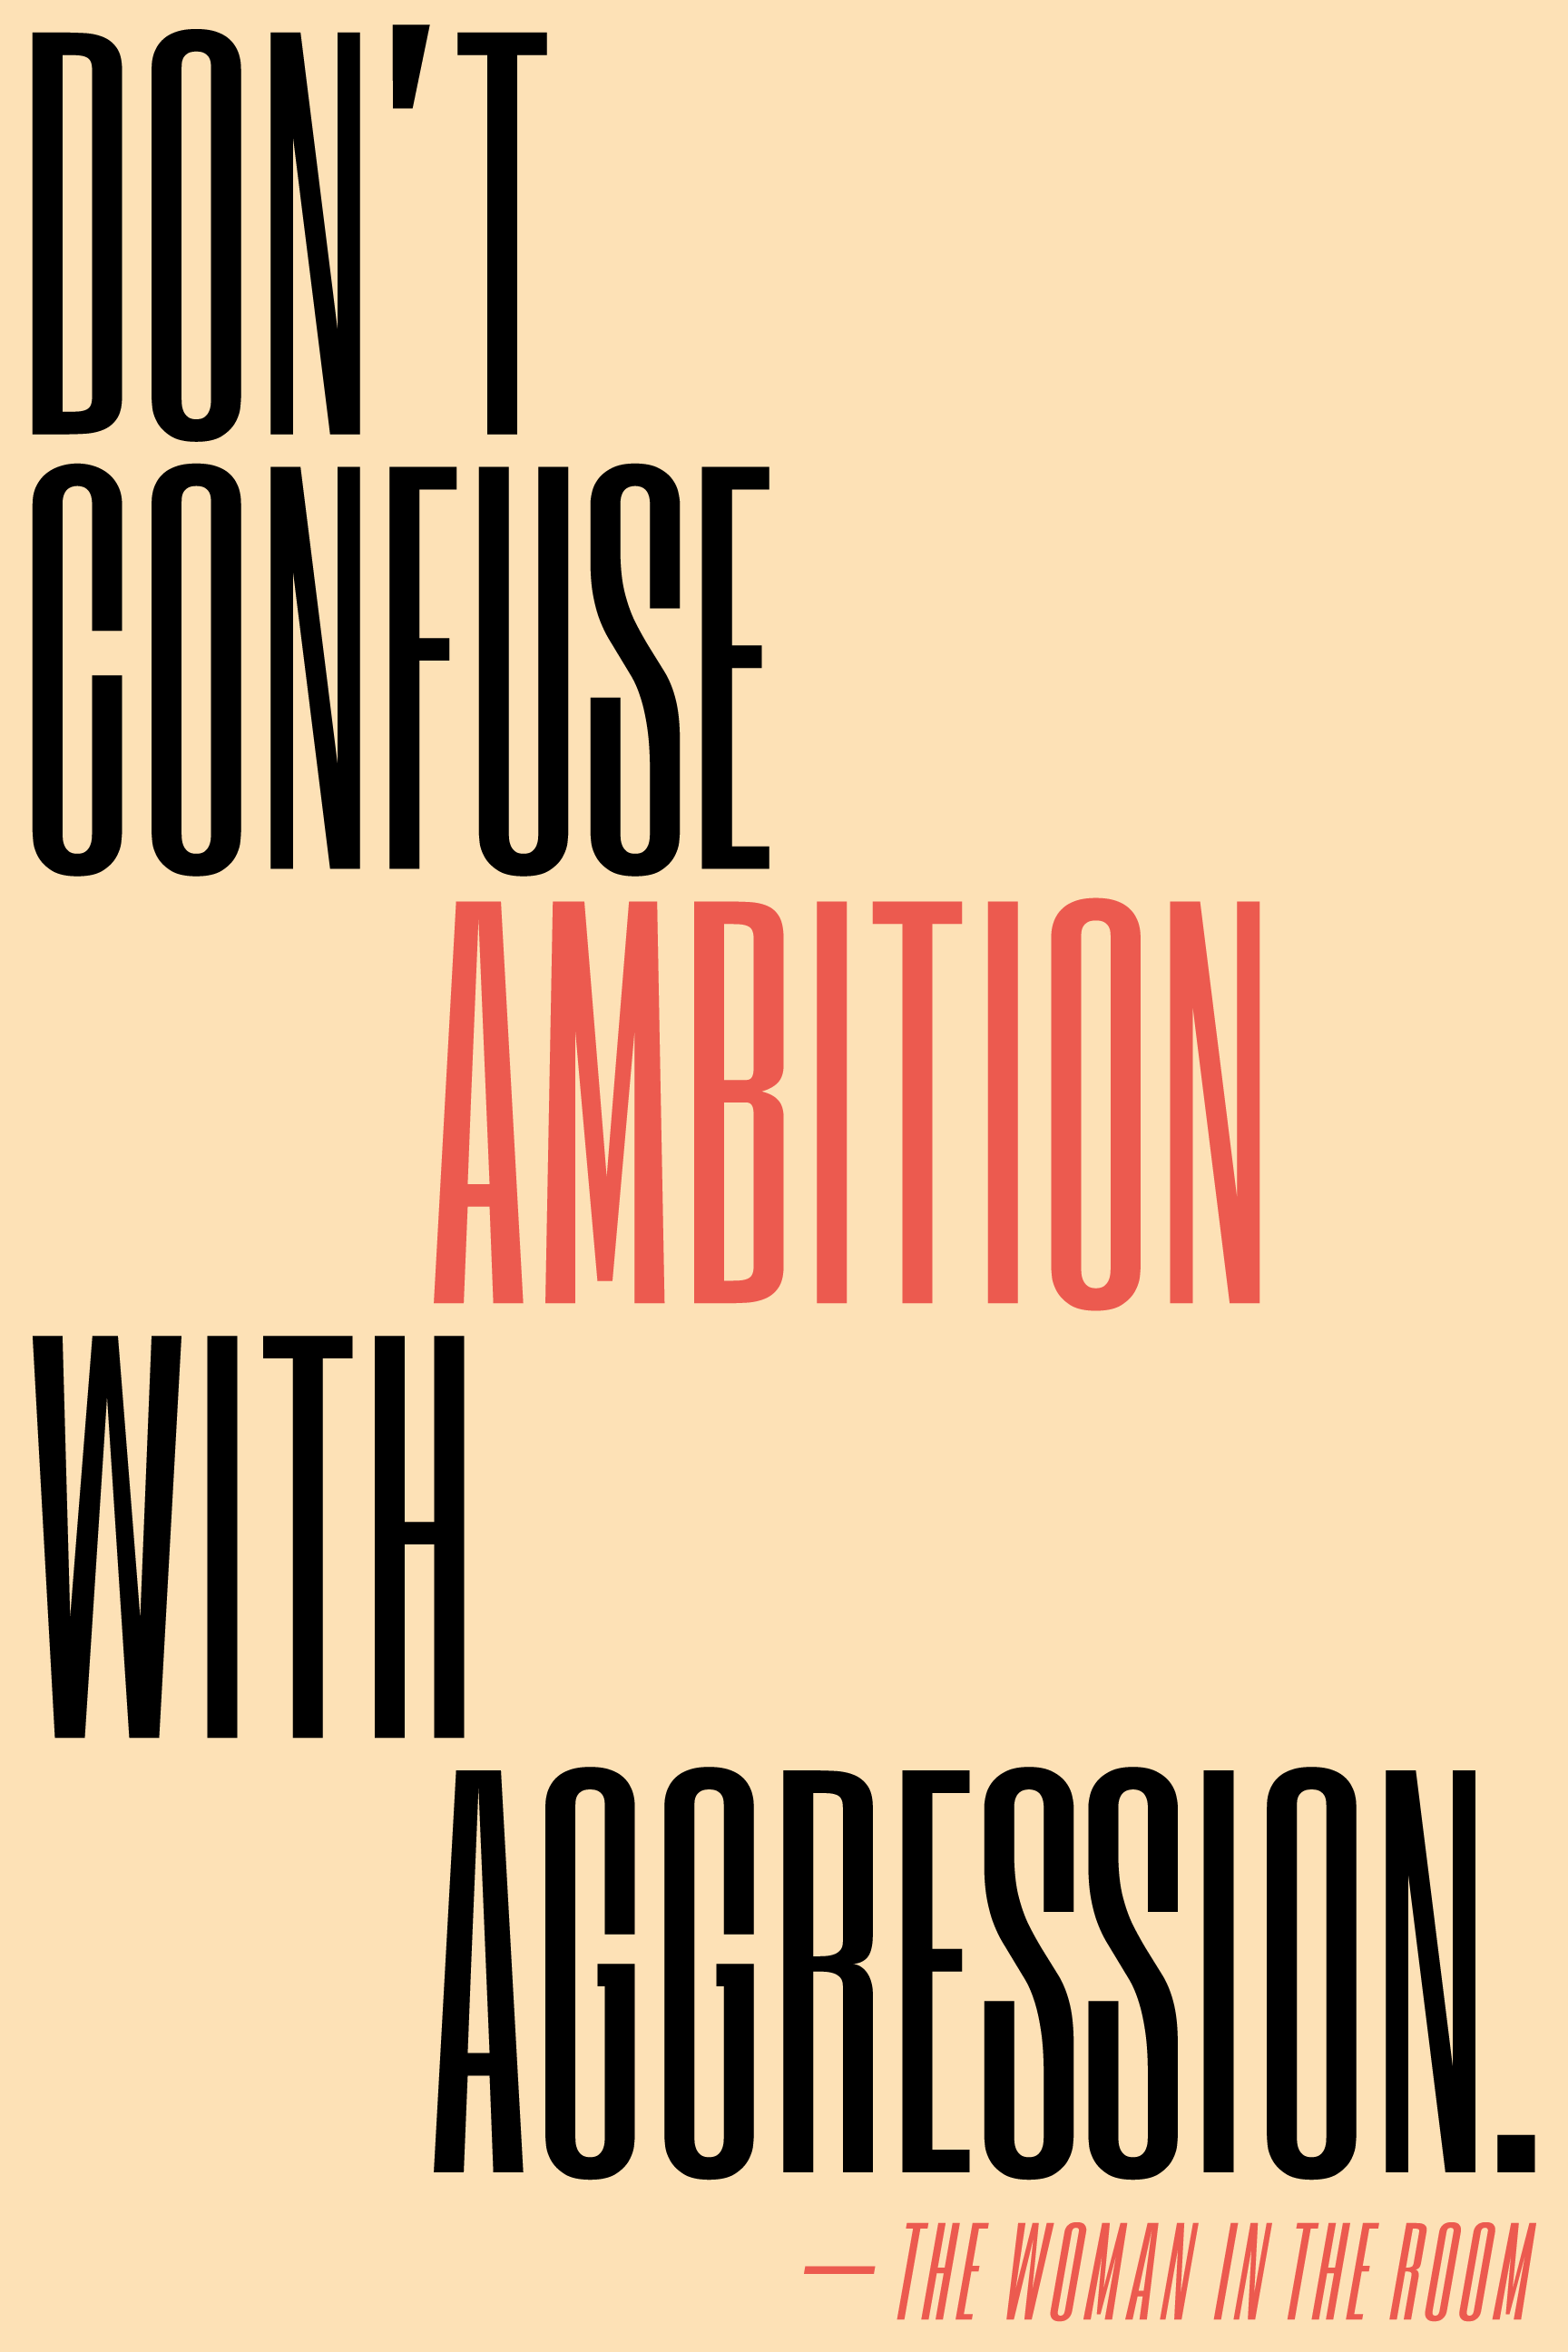 Don't confuse ambition with aggression.